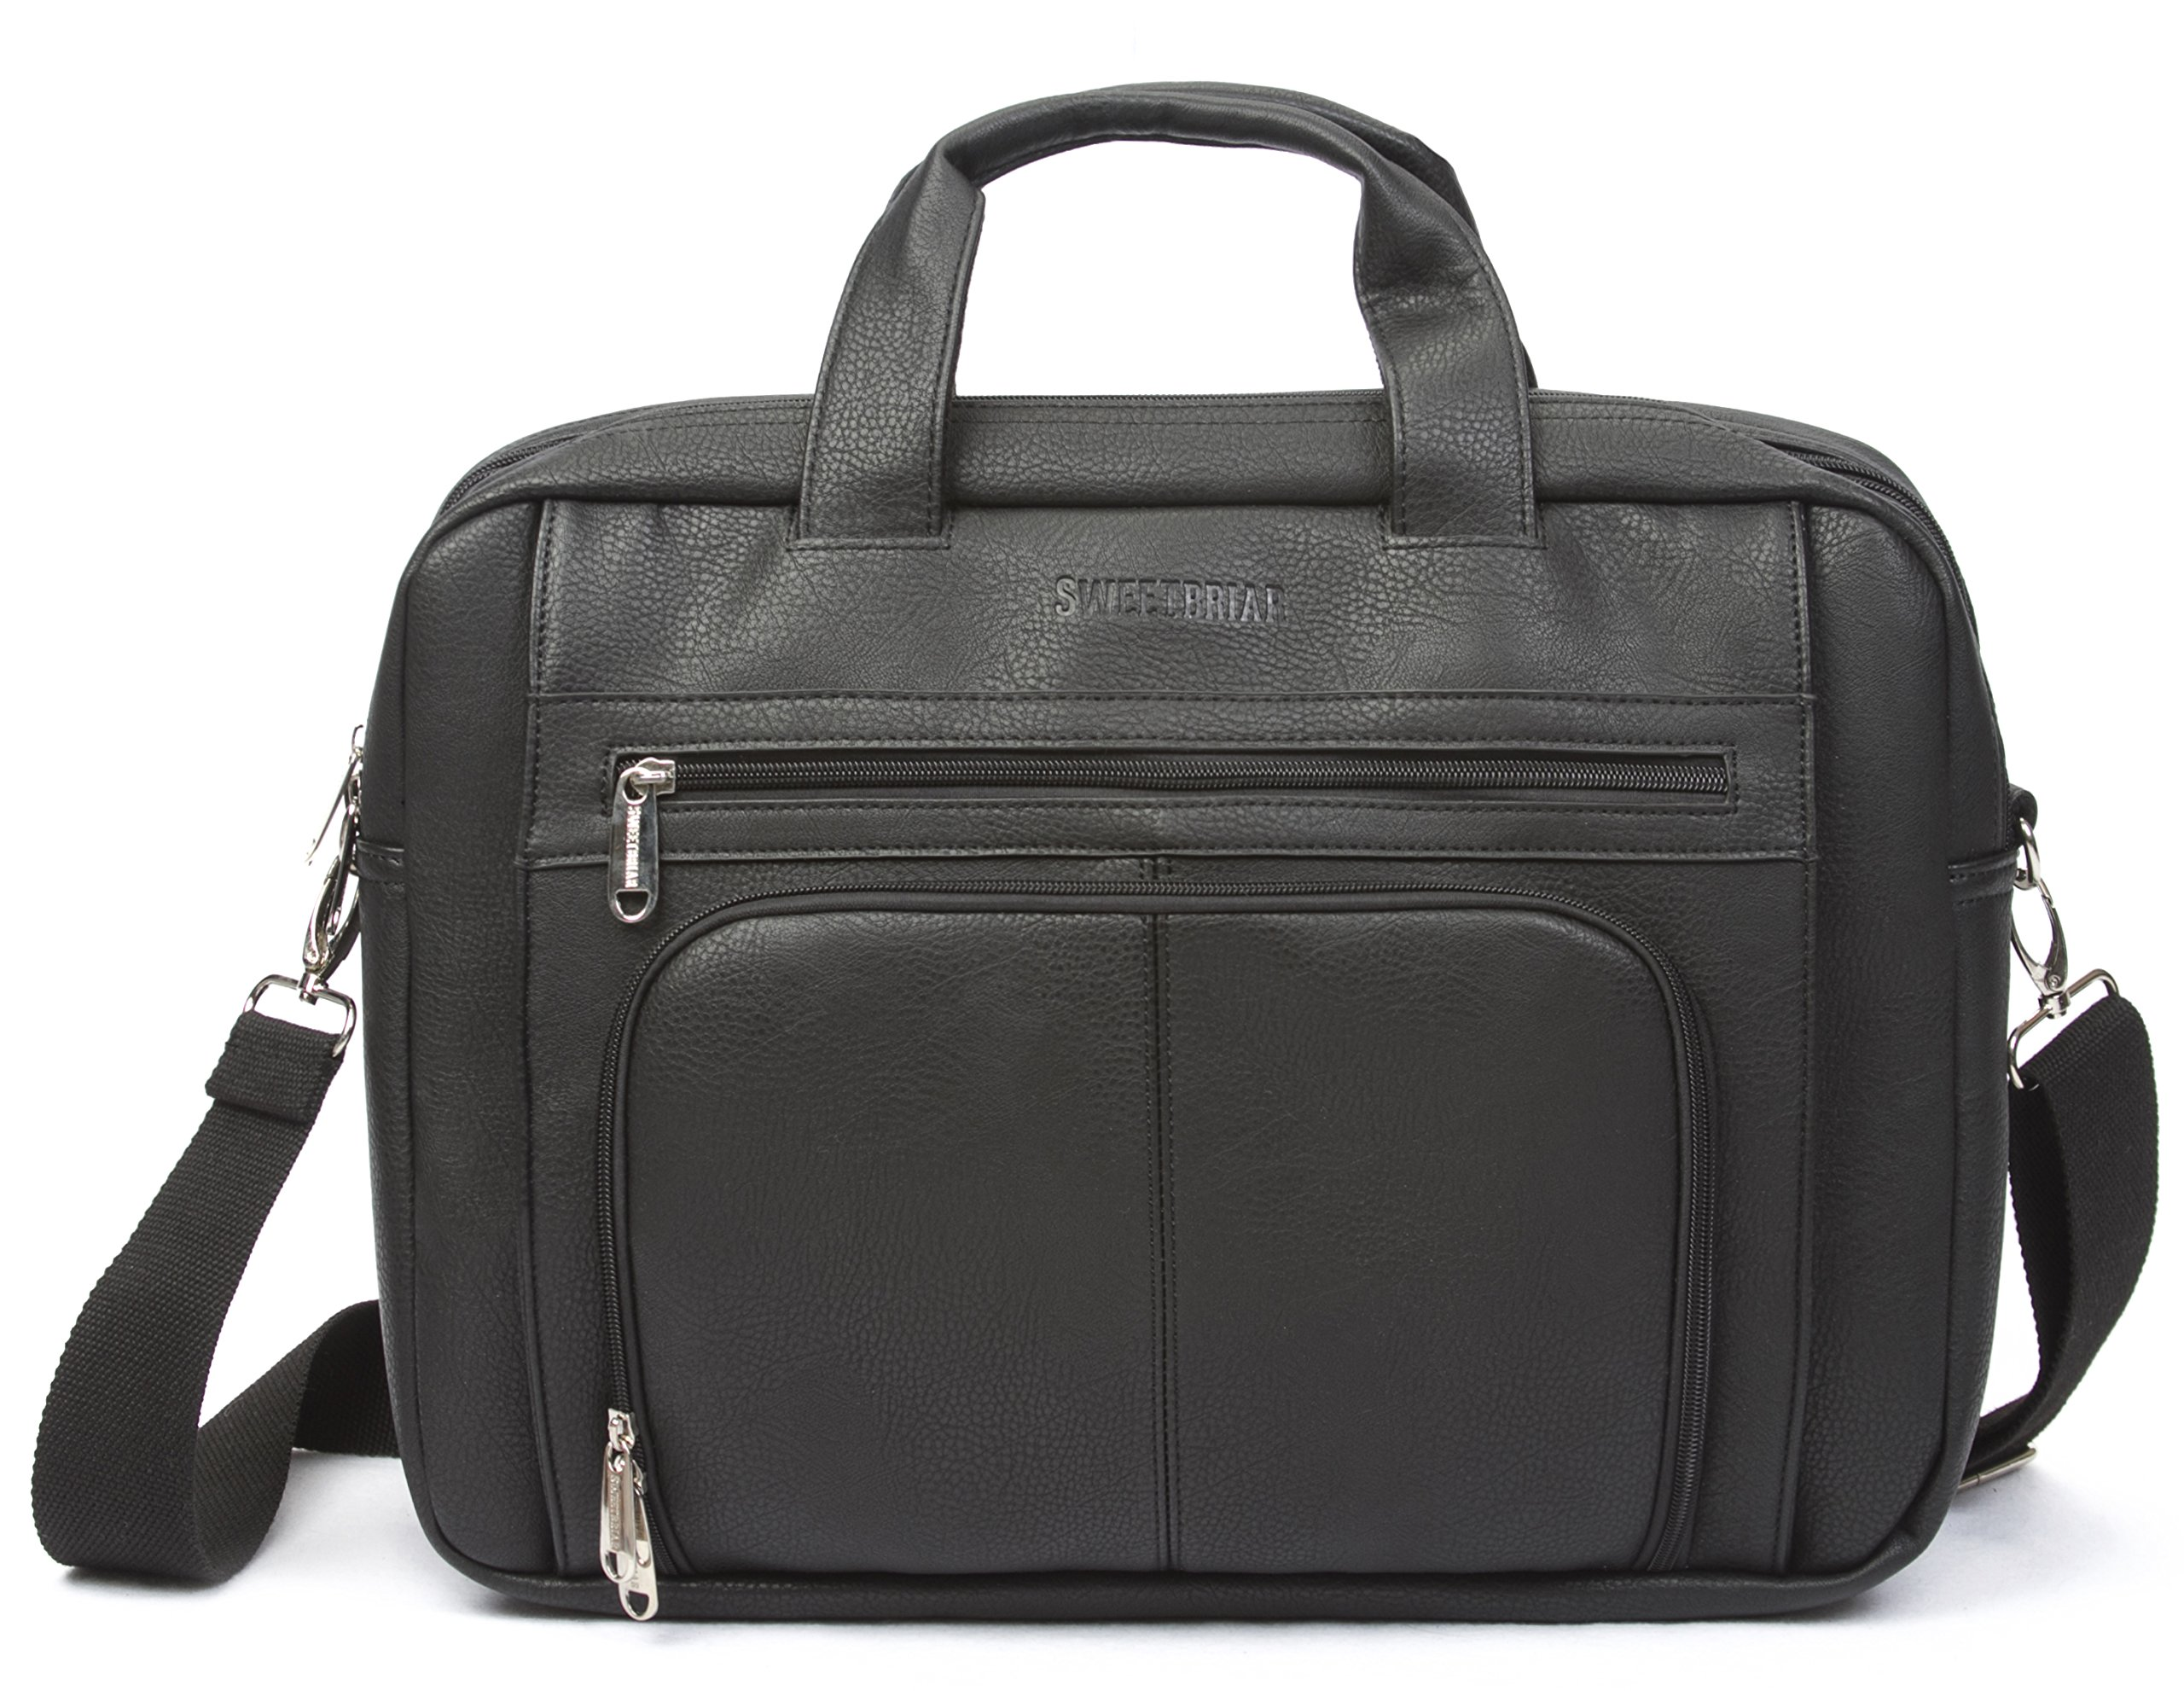 Sweetbriar Classic Laptop Briefcase - Vegan Leather Bag Designed to Protect Laptops up to 15.6 Inches